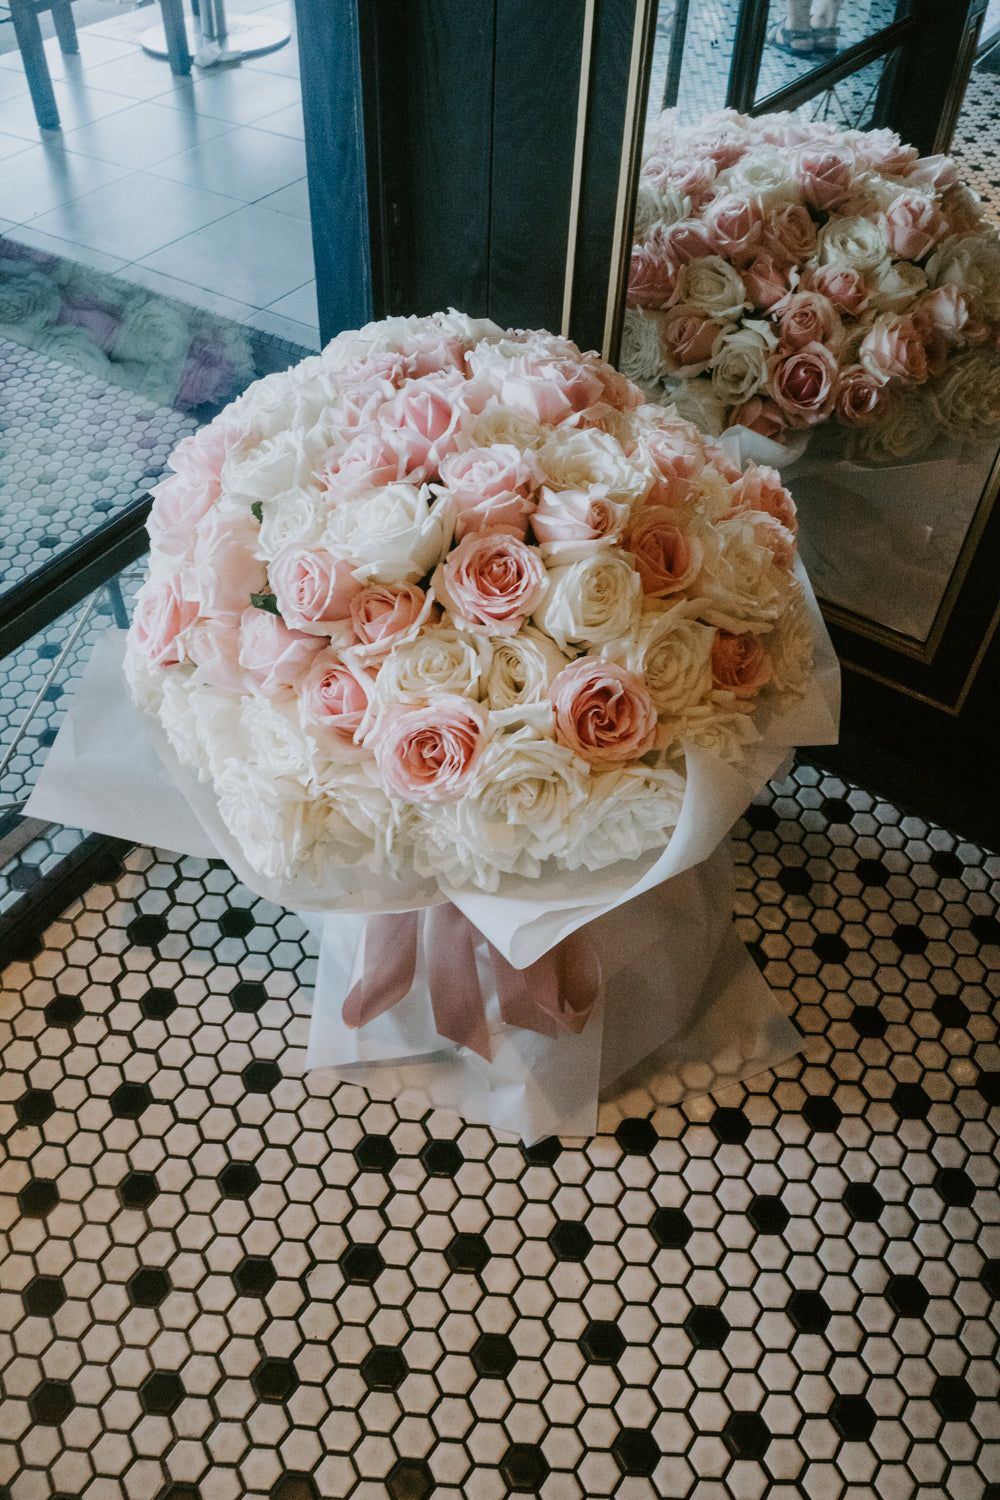 Round bouquet for wedding proposal flower with engagement ring during Singapore engagement party celebration